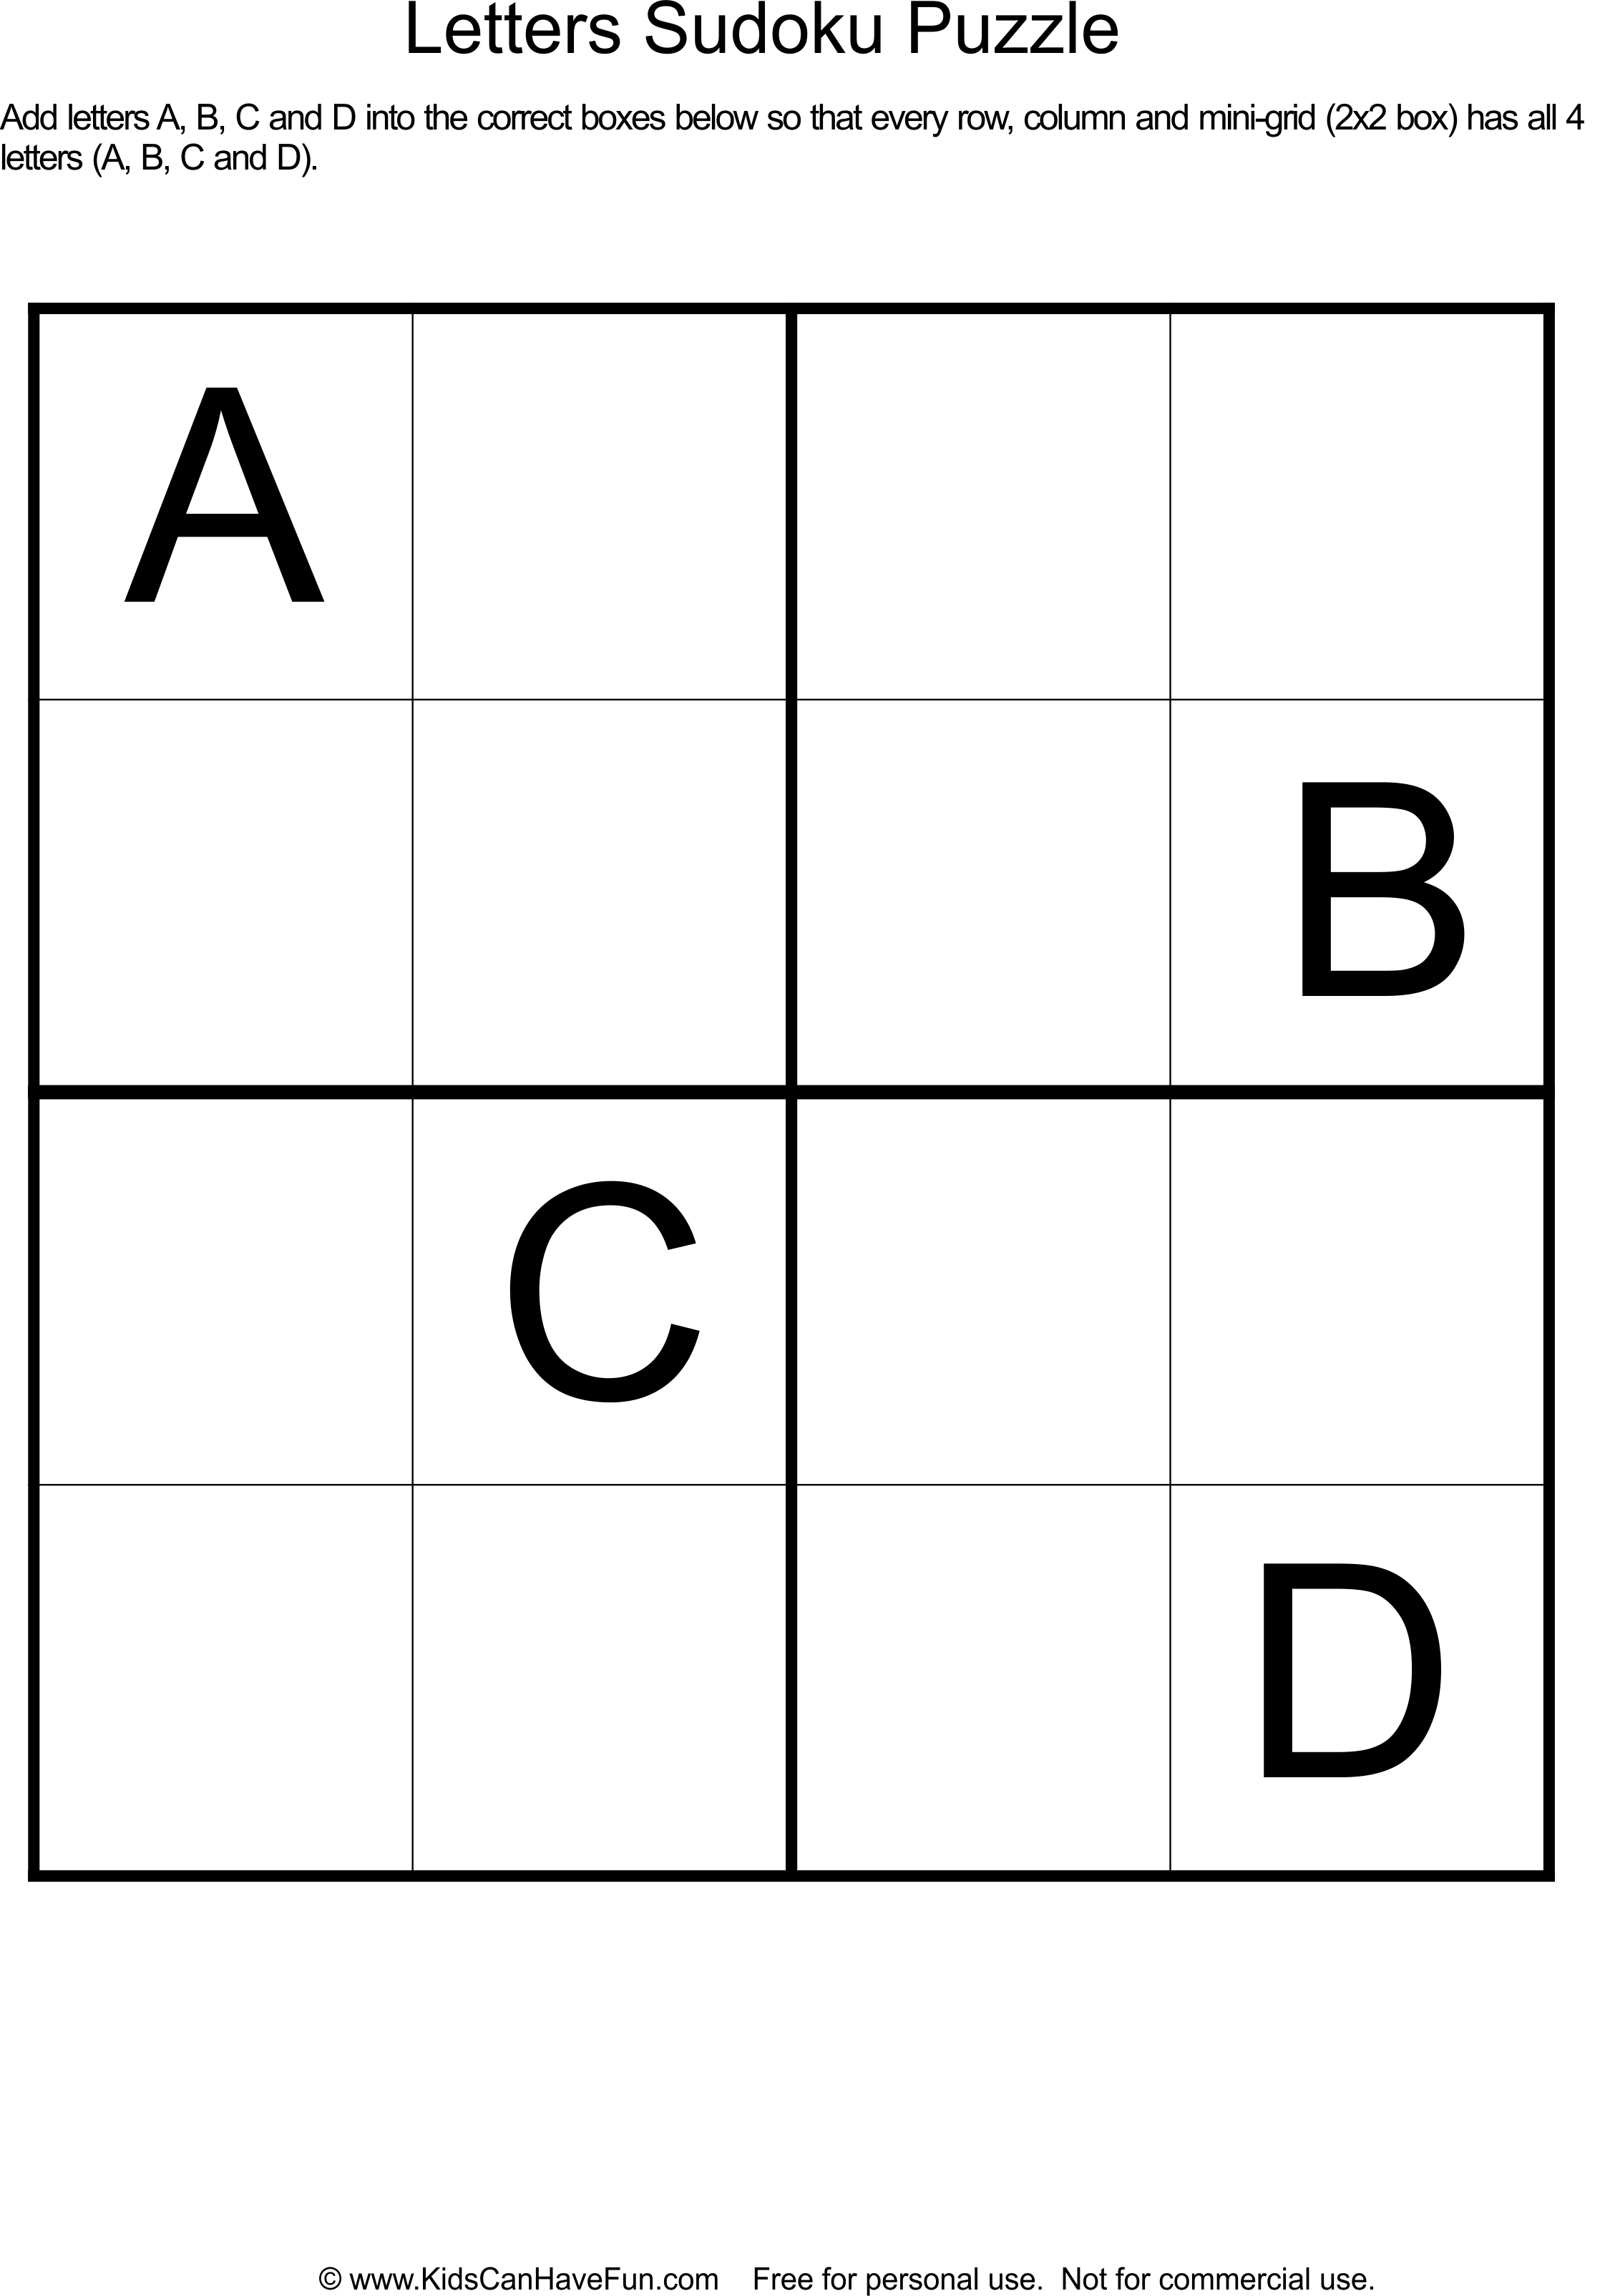 Pin By Kidscanhavefun On Word Puzzles For Kids Crossword Word Search Sudoku